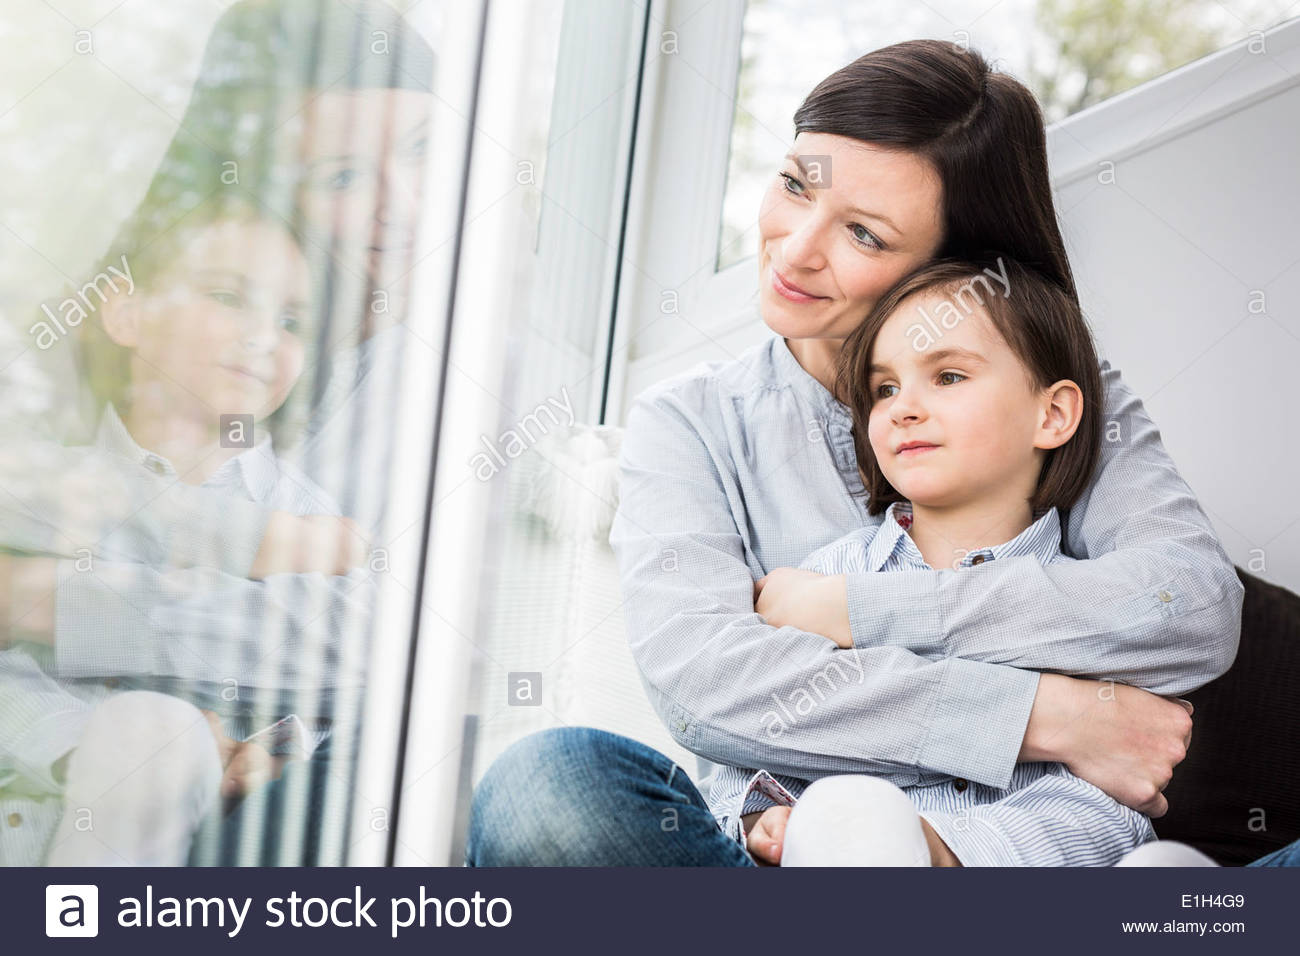 Mother and Daughter hugging by window Photo Stock